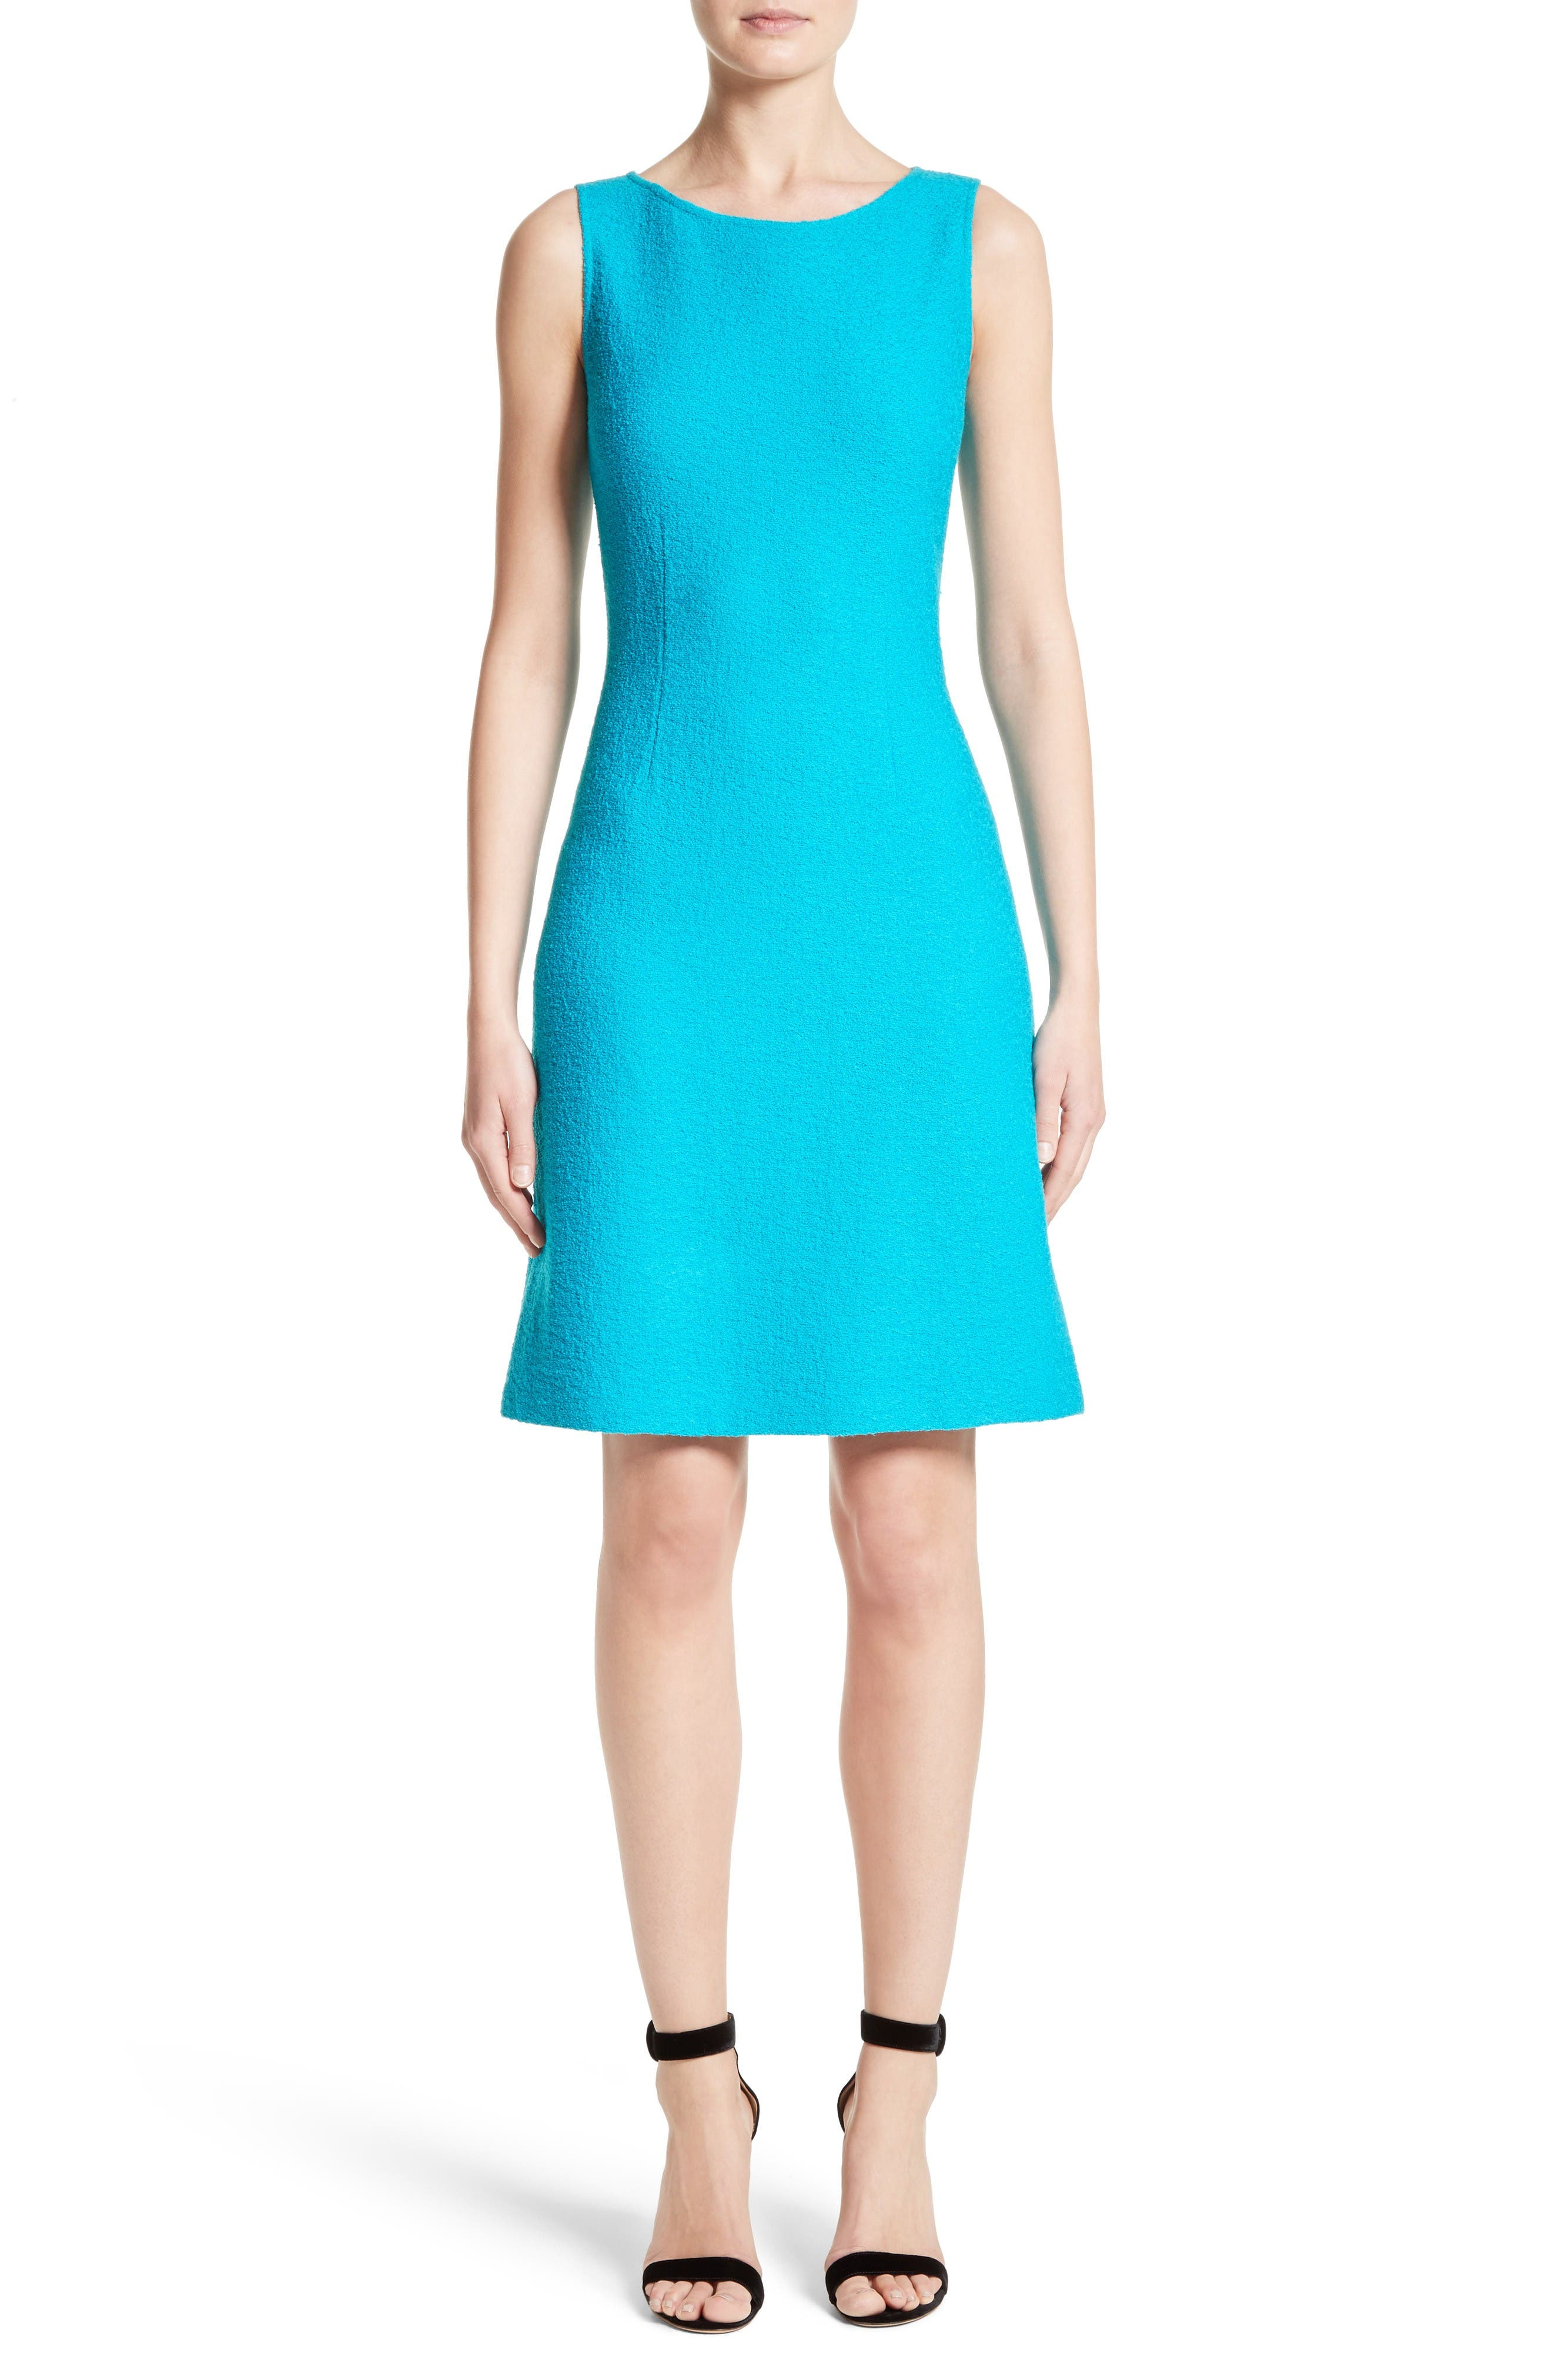 Main Image - St. John Collection Clair Knit A-Line Dress